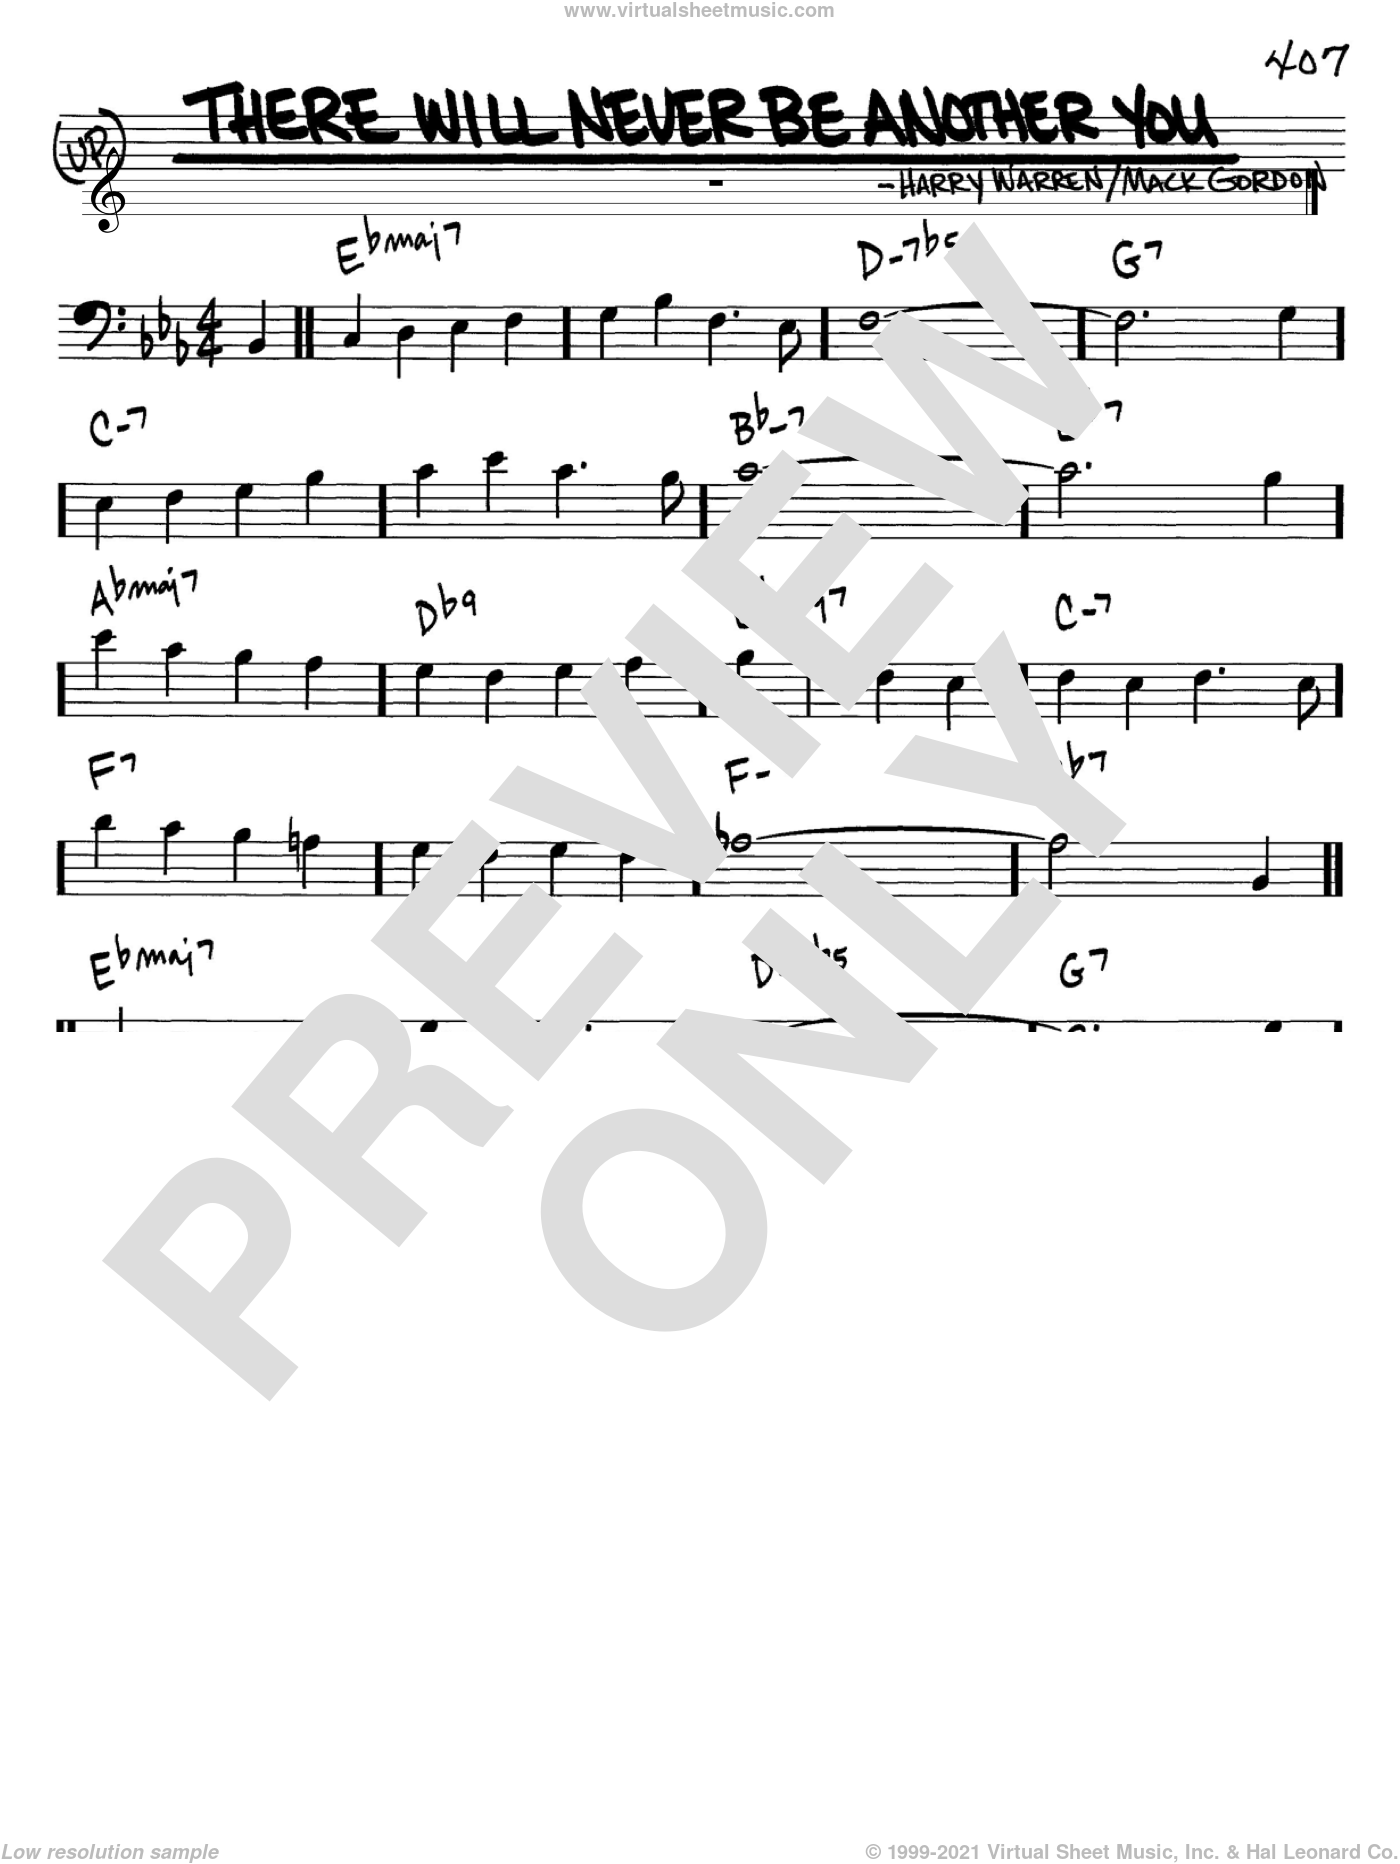 There Will Never Be Another You sheet music for voice and other instruments (Bass Clef ) by Mack Gordon and Harry Warren. Score Image Preview.